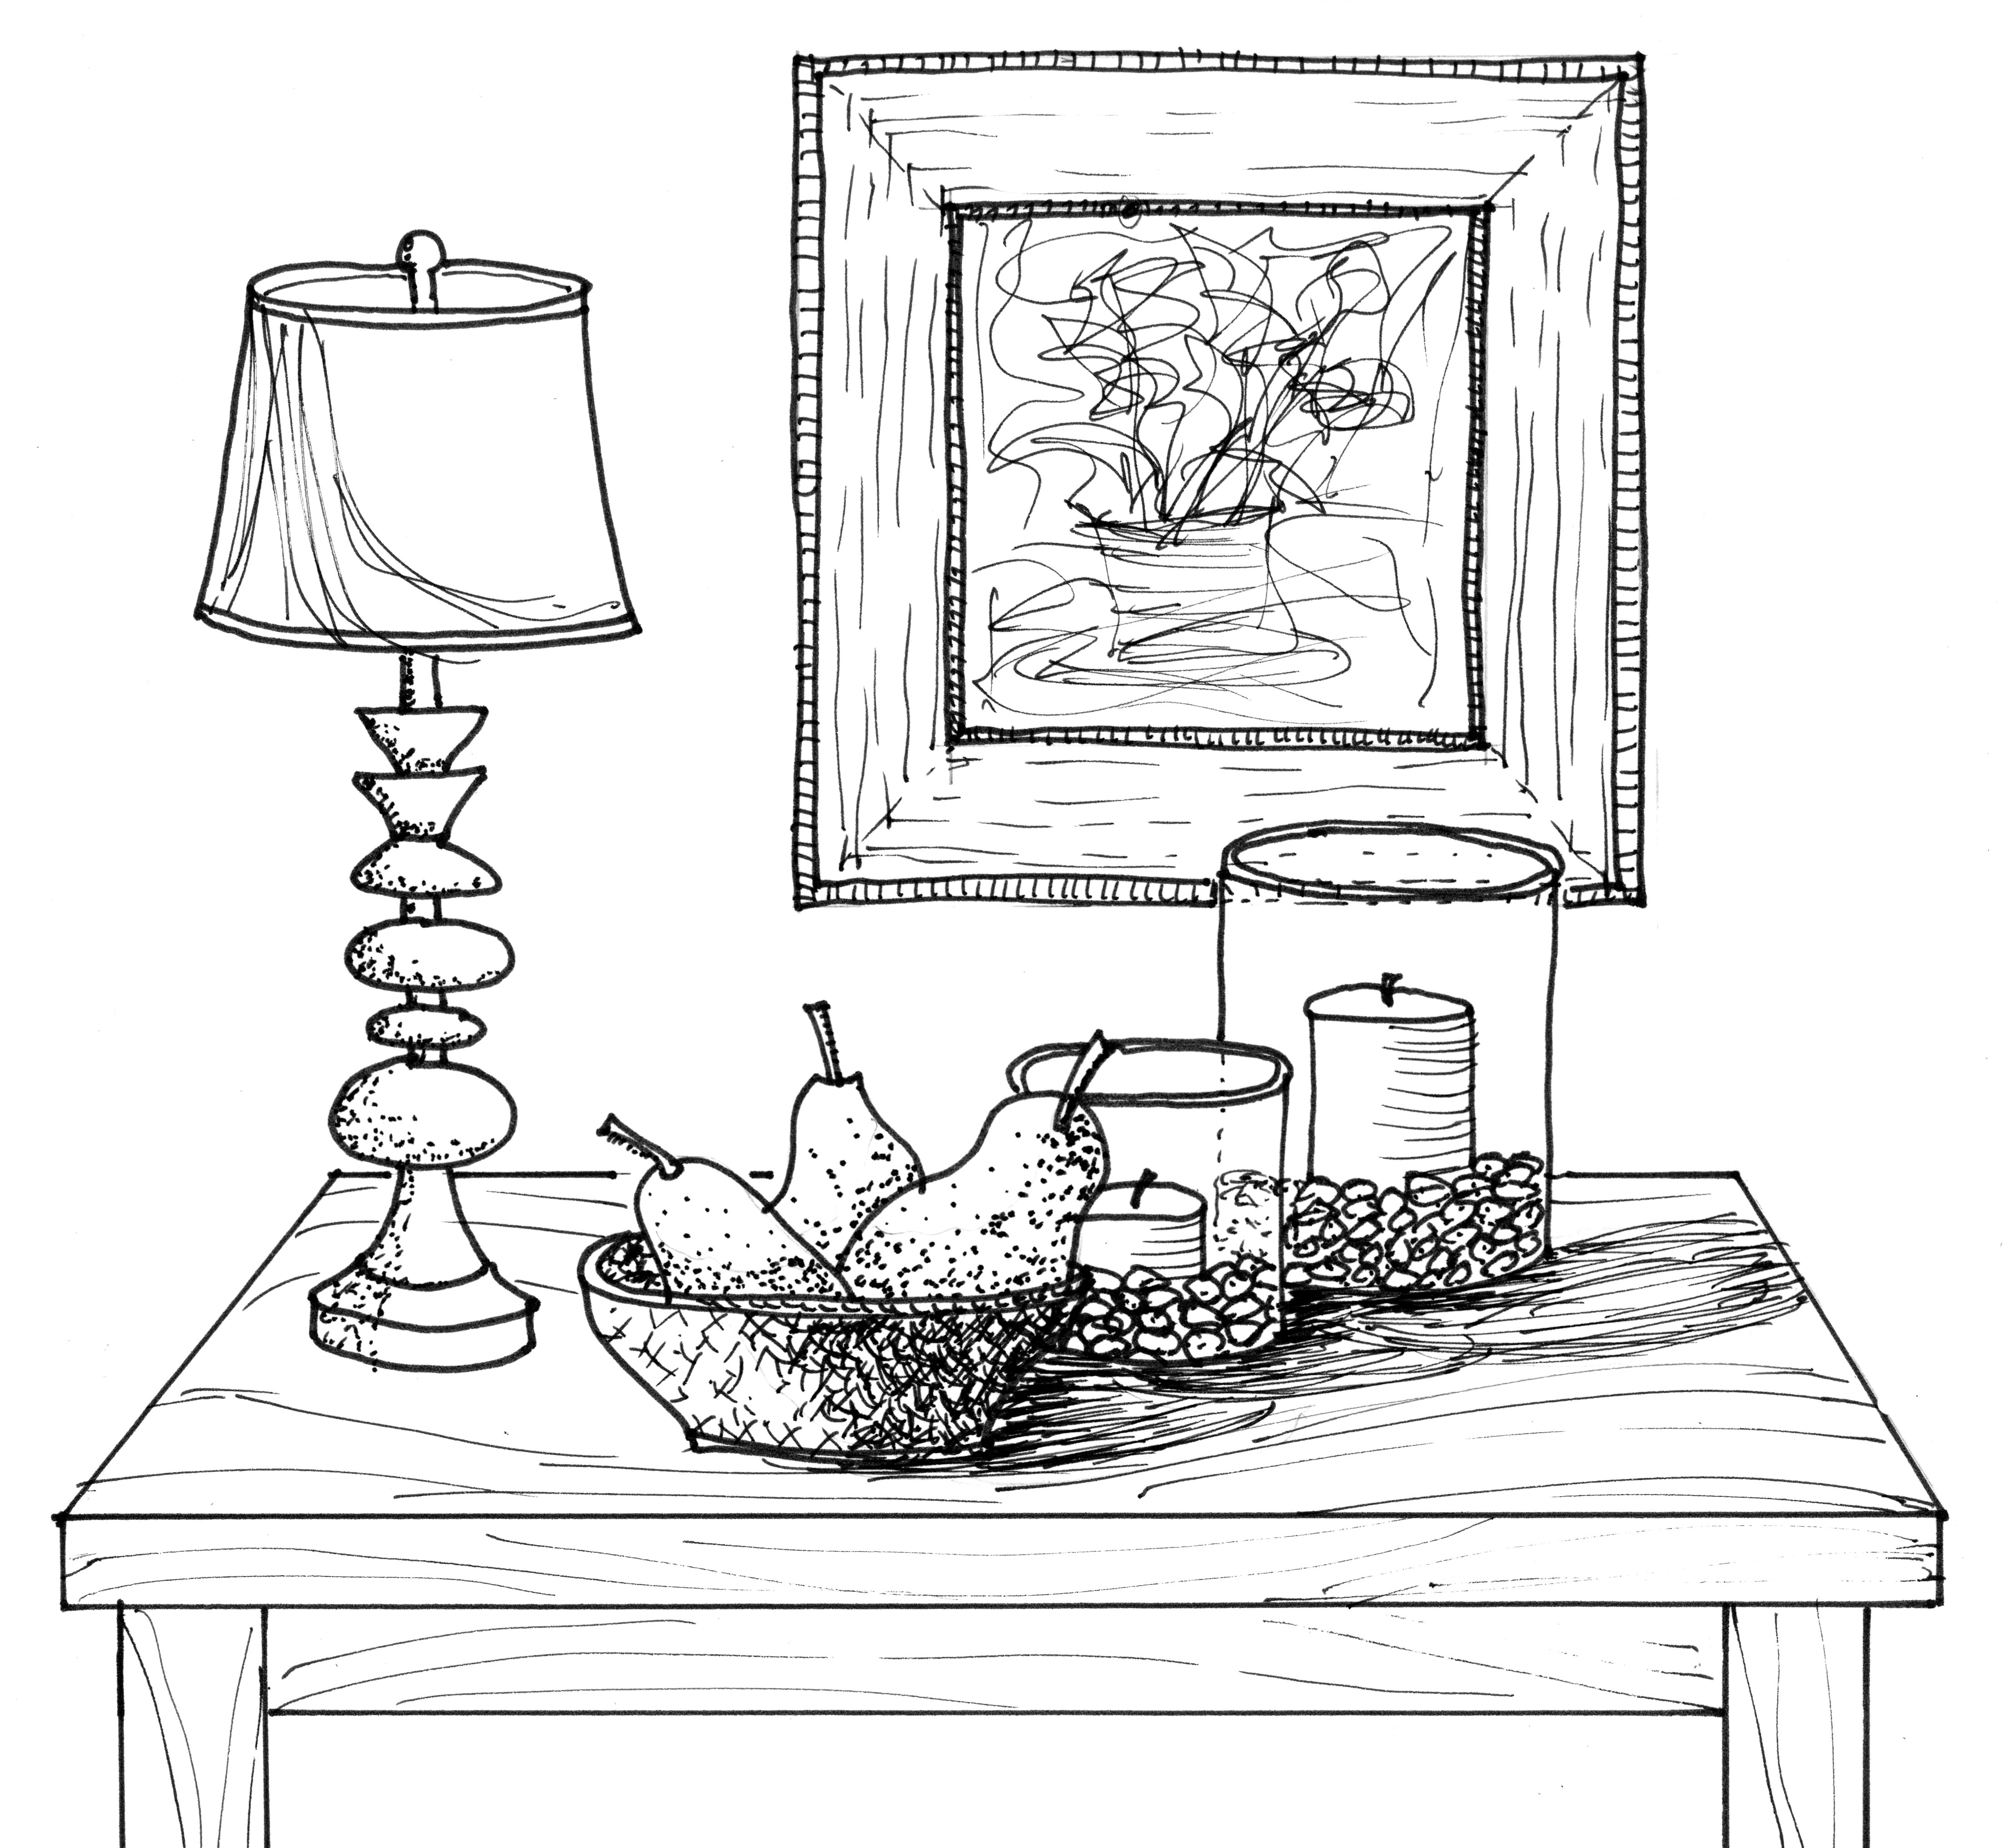 Desk lamp drawing at getdrawings free for personal use desk 4425x4066 splendid table lamp line drawing best inspiration for room lamps aloadofball Image collections